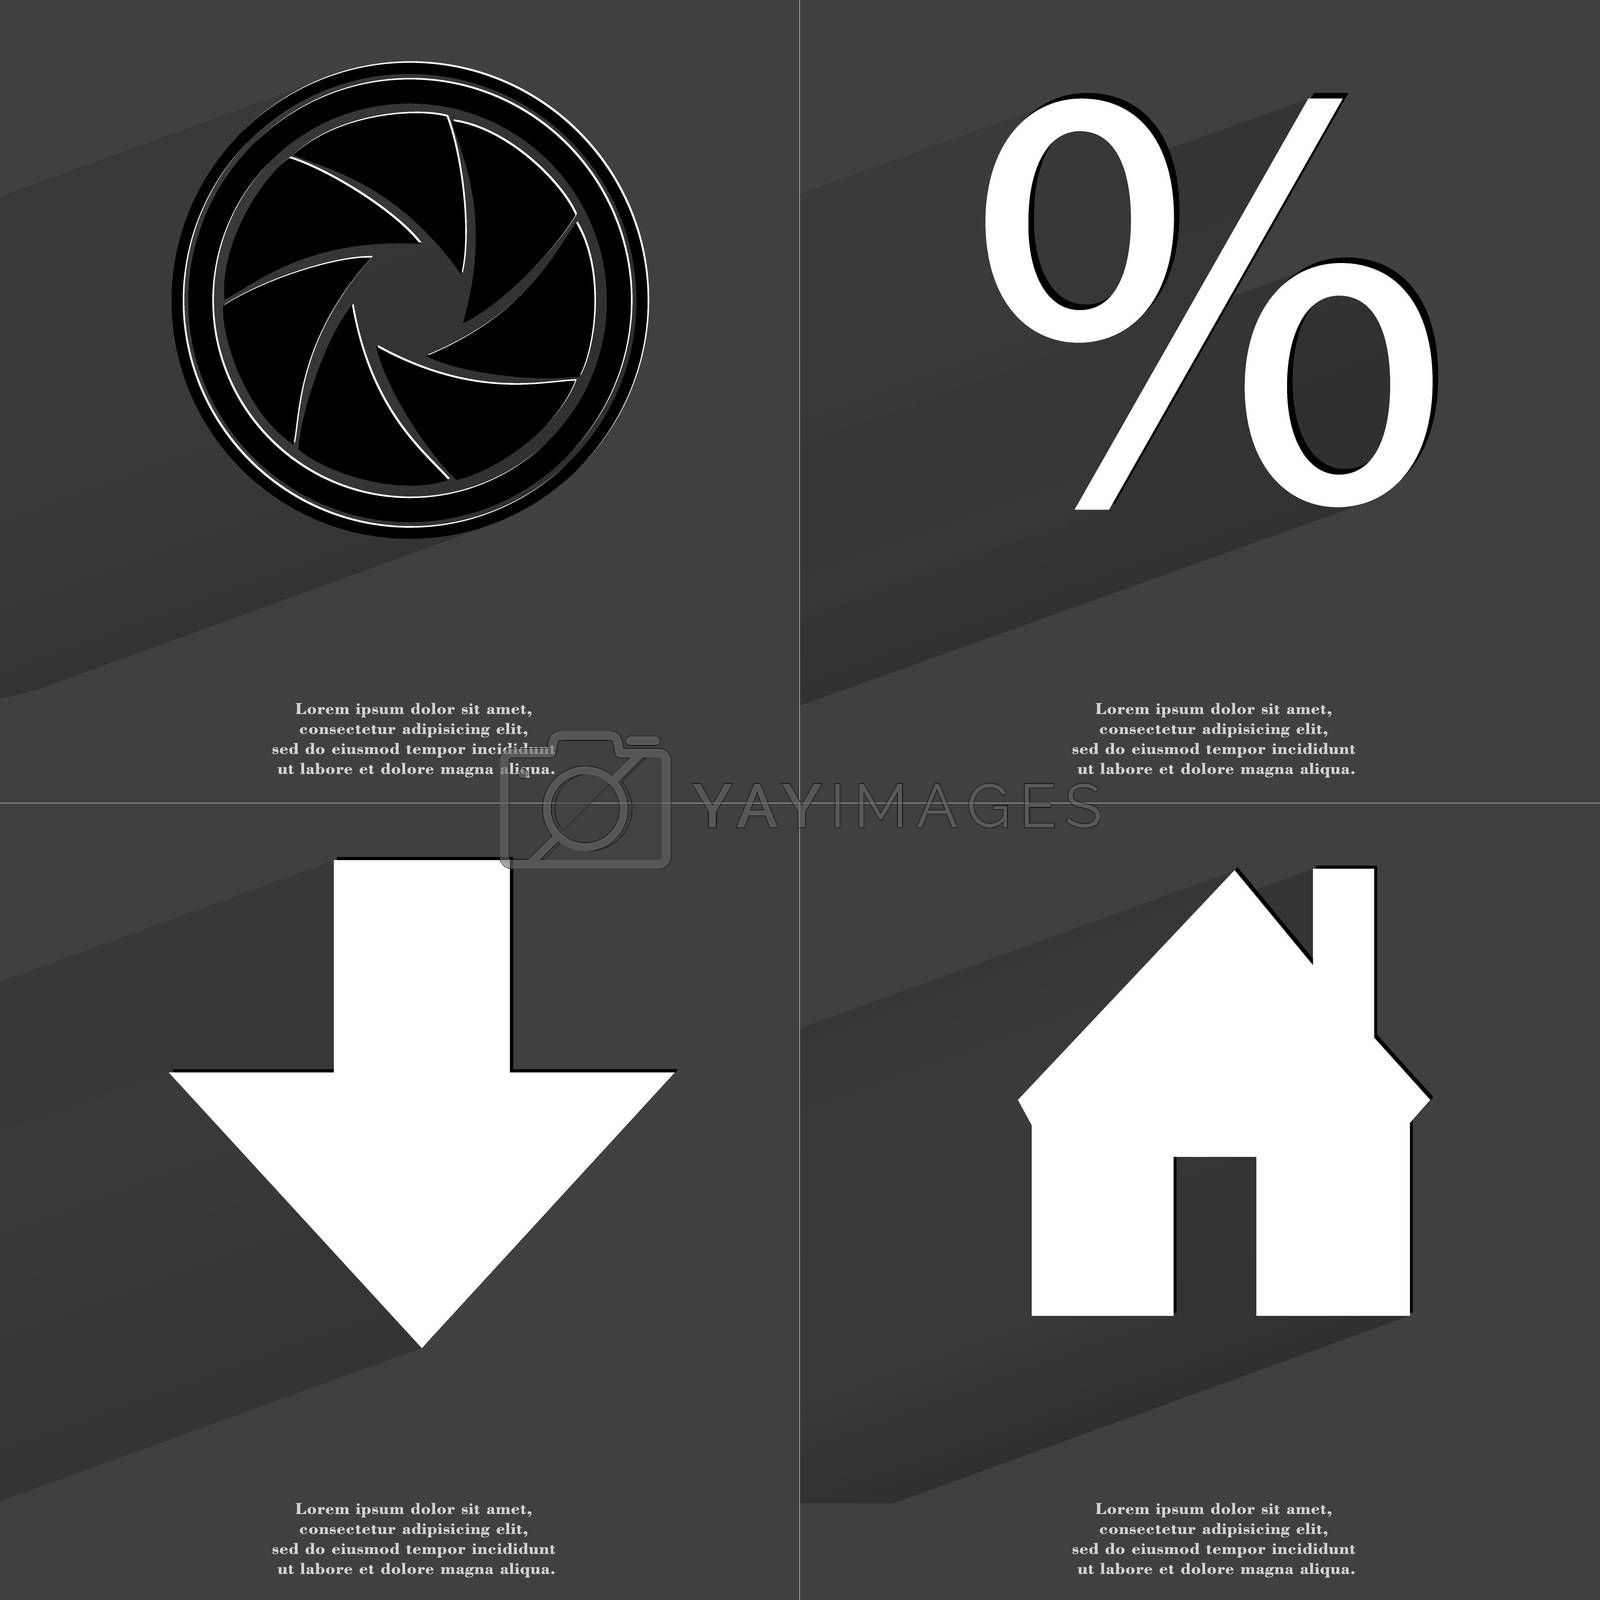 Royalty free image of Lens, Percent sign, Arrows directed down, House. Symbols with long shadow. Flat design by serhii_lohvyniuk